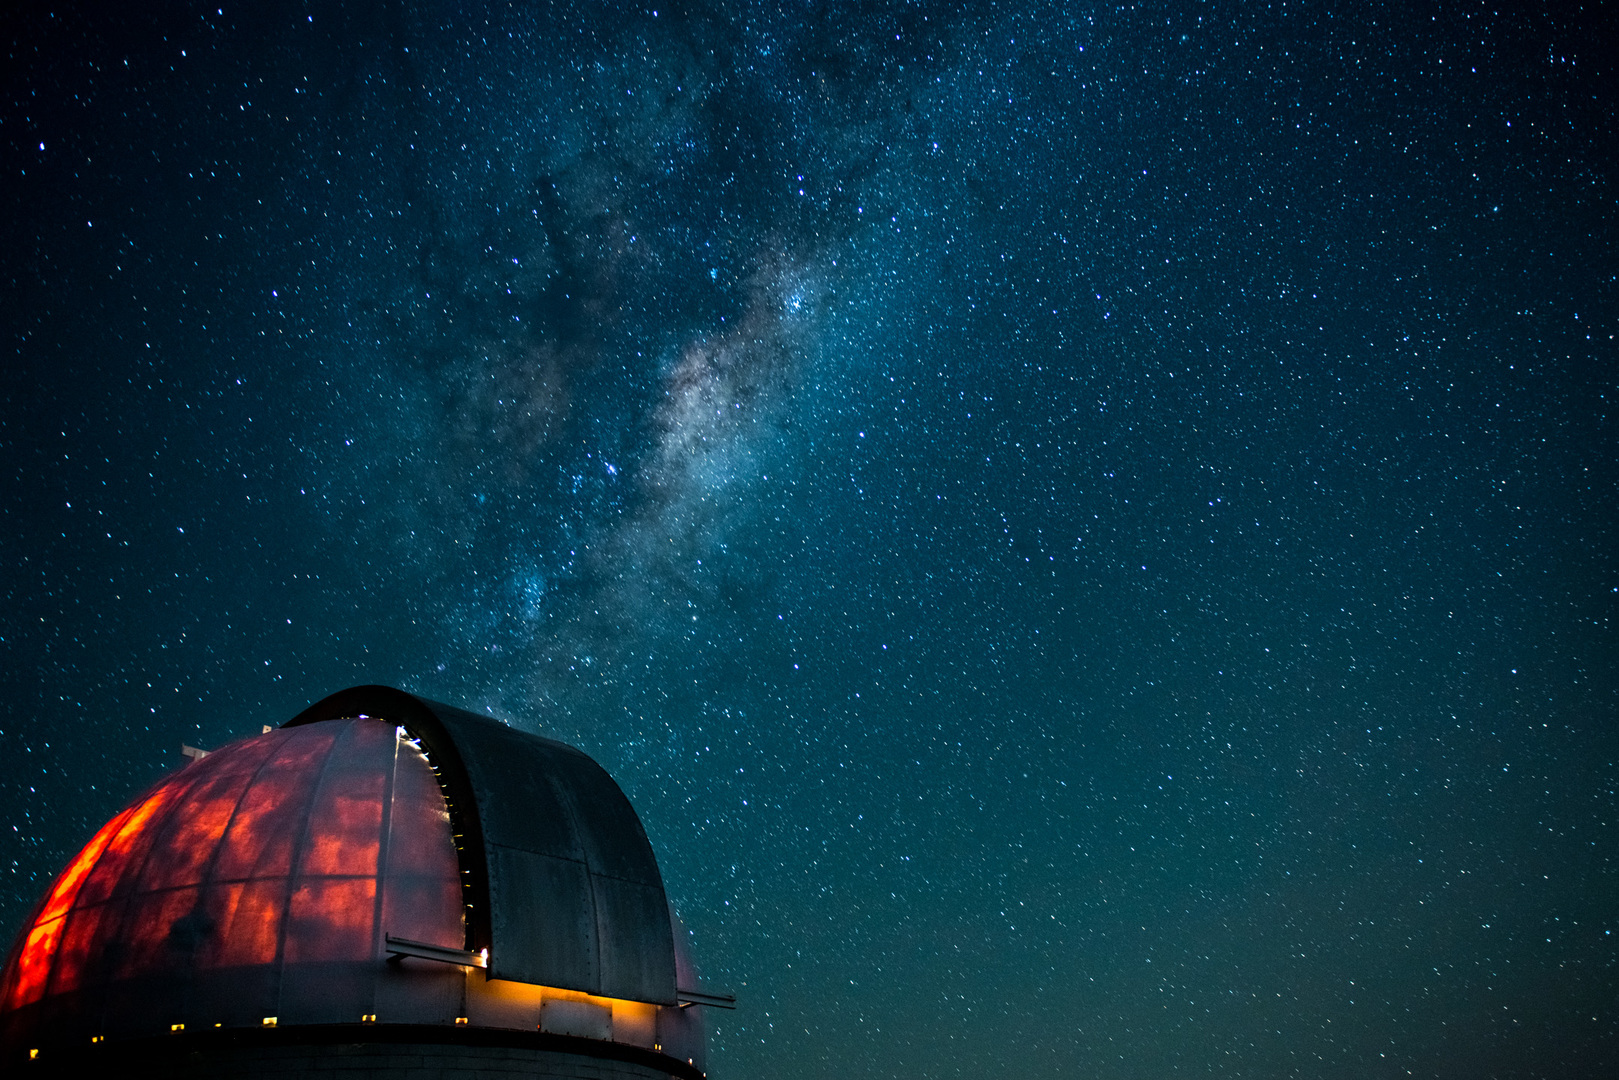 MBO dome with Milky Way in background